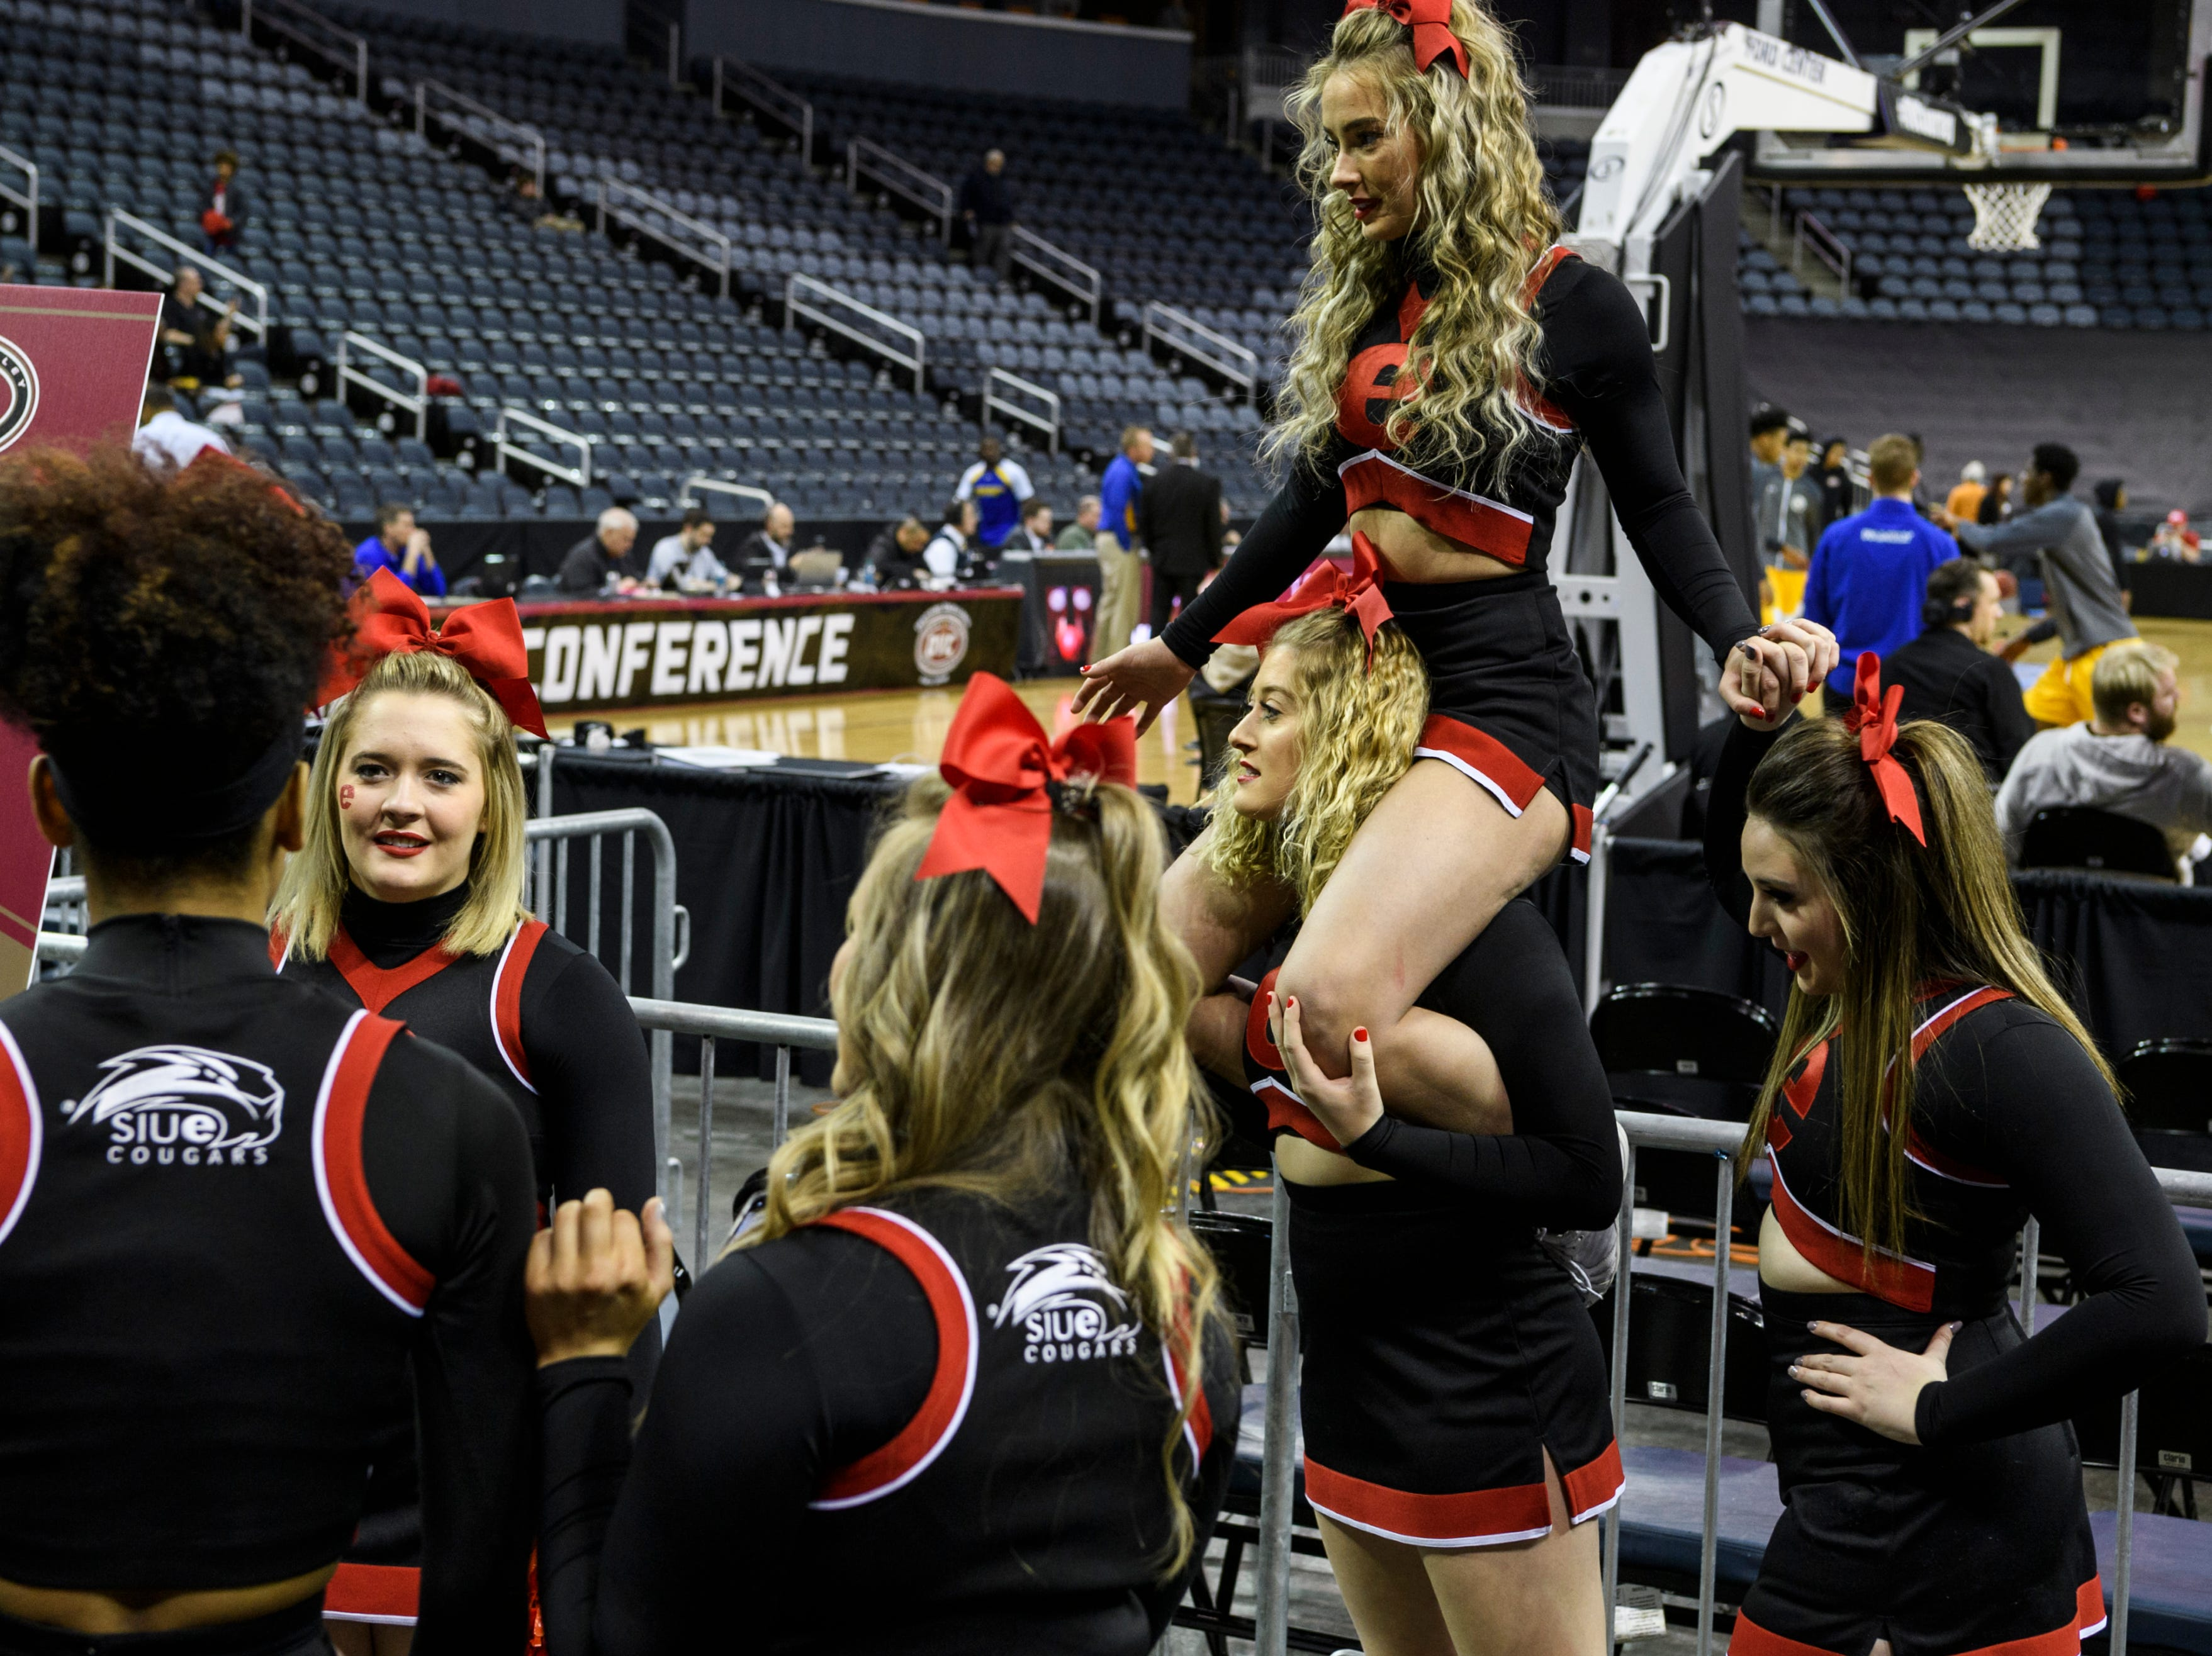 Cheerleaders, including Zoe Guilford balancing Ashley Pezzella on her shoulders, from the Southern Illinois University Edwardsville pass time talking and taking pictures together before the start of a first round Ohio Valley Conference tournament game at Ford Center in Evansville, Ind., Wednesday, March 6, 2019. Their mens basketball team lost to Morehead State, 72-68.